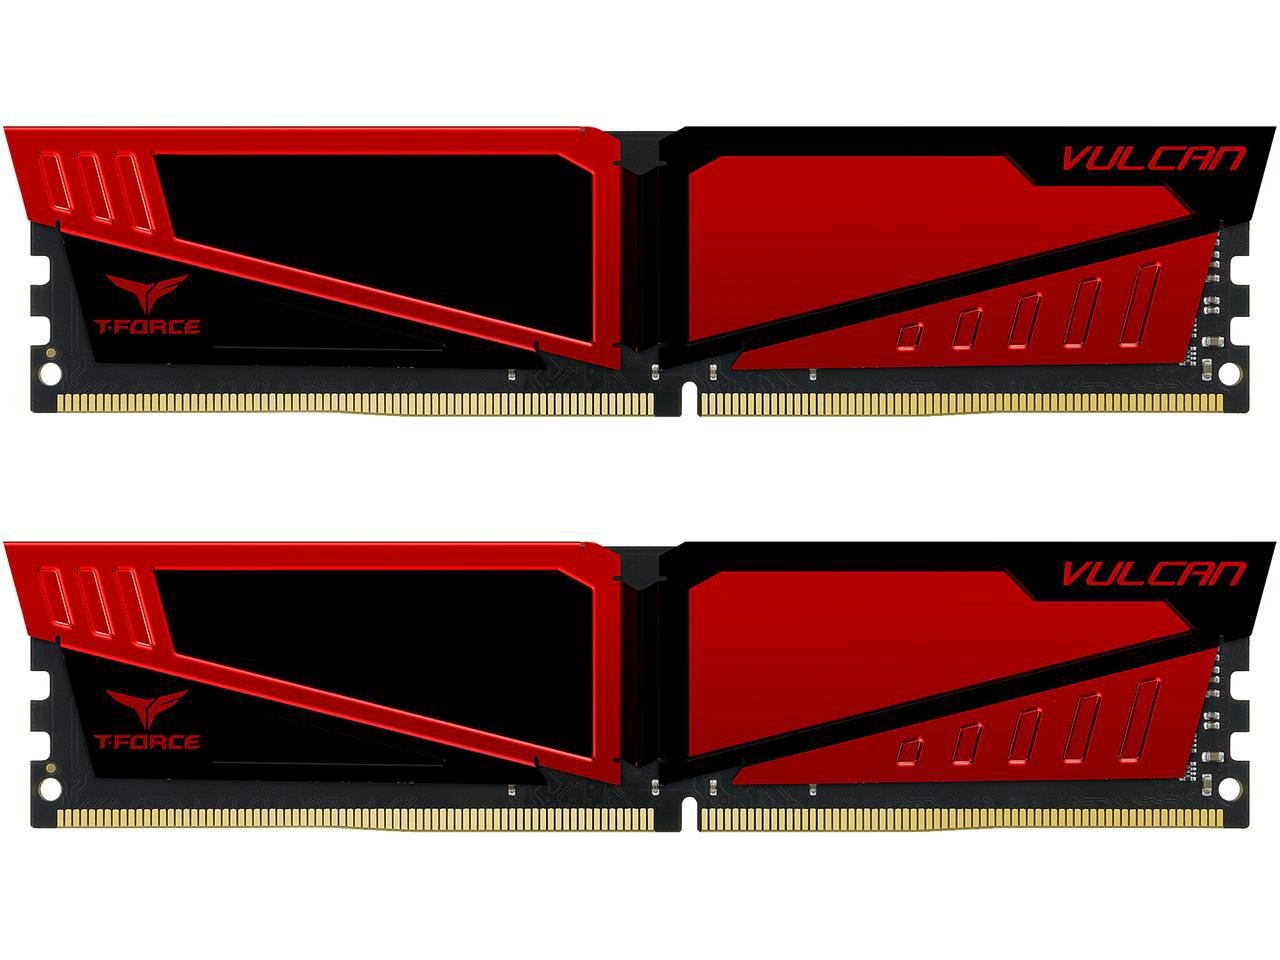 Team Group Vulcan DDR4-2400 16GB Module de mémoire 16 Go 2400 MHz - Modules de mémoire (16 Go, 2 x 8 Go, DDR4, 2400 MHz, 288-pin DIMM, Rouge)